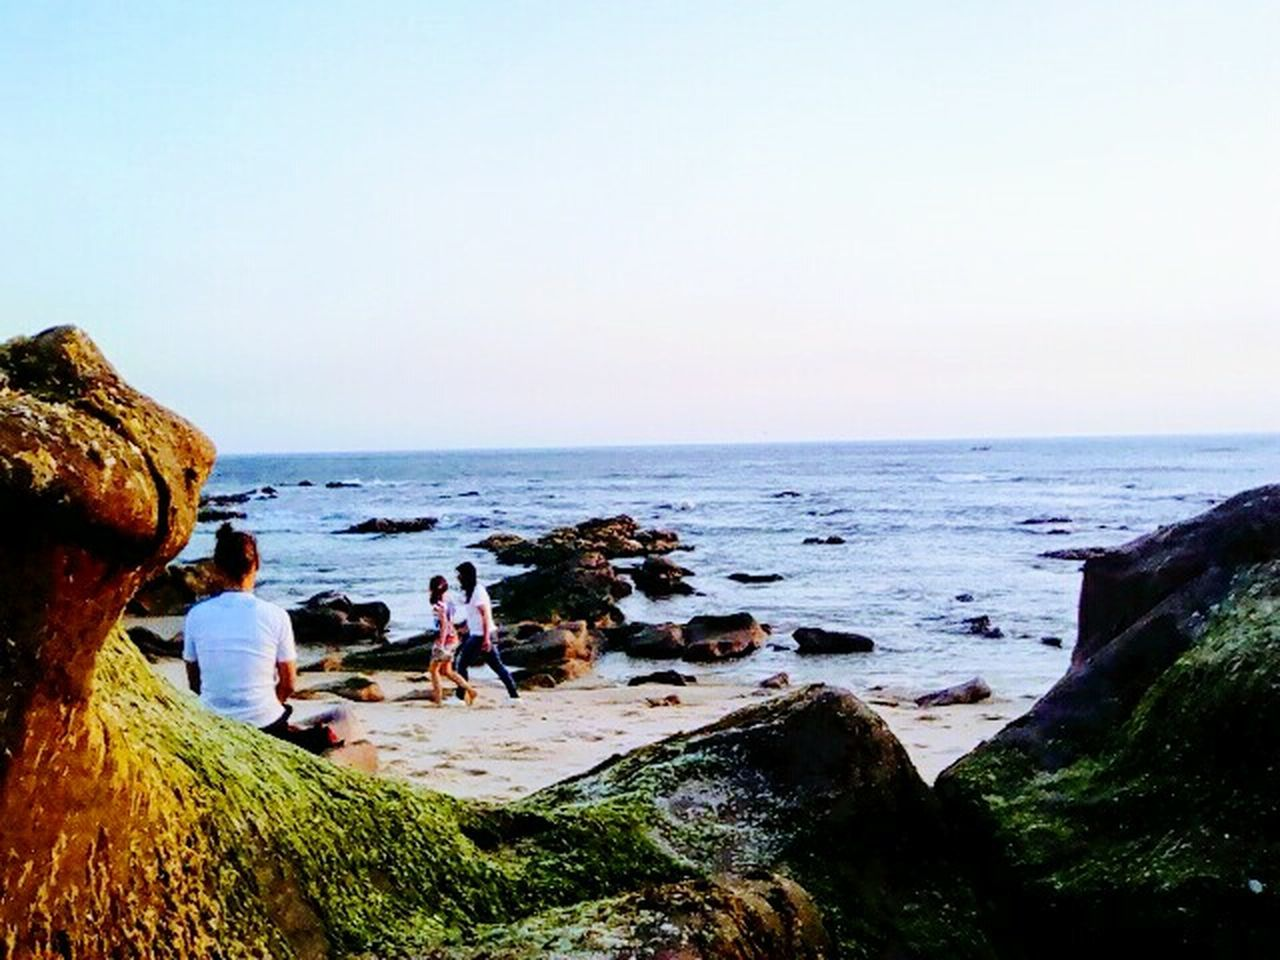 Sea Beach Water Rock - Object Horizon Over Water Nature Men Women Vacations Outdoors Scenics Beauty In Nature Lifestyles Real People Wave Adult Sky Standing People Sand Low Angle View Beachtime The Great Outdoors - 2017 EyeEm Awards EyeEmNewHere Clear Sky